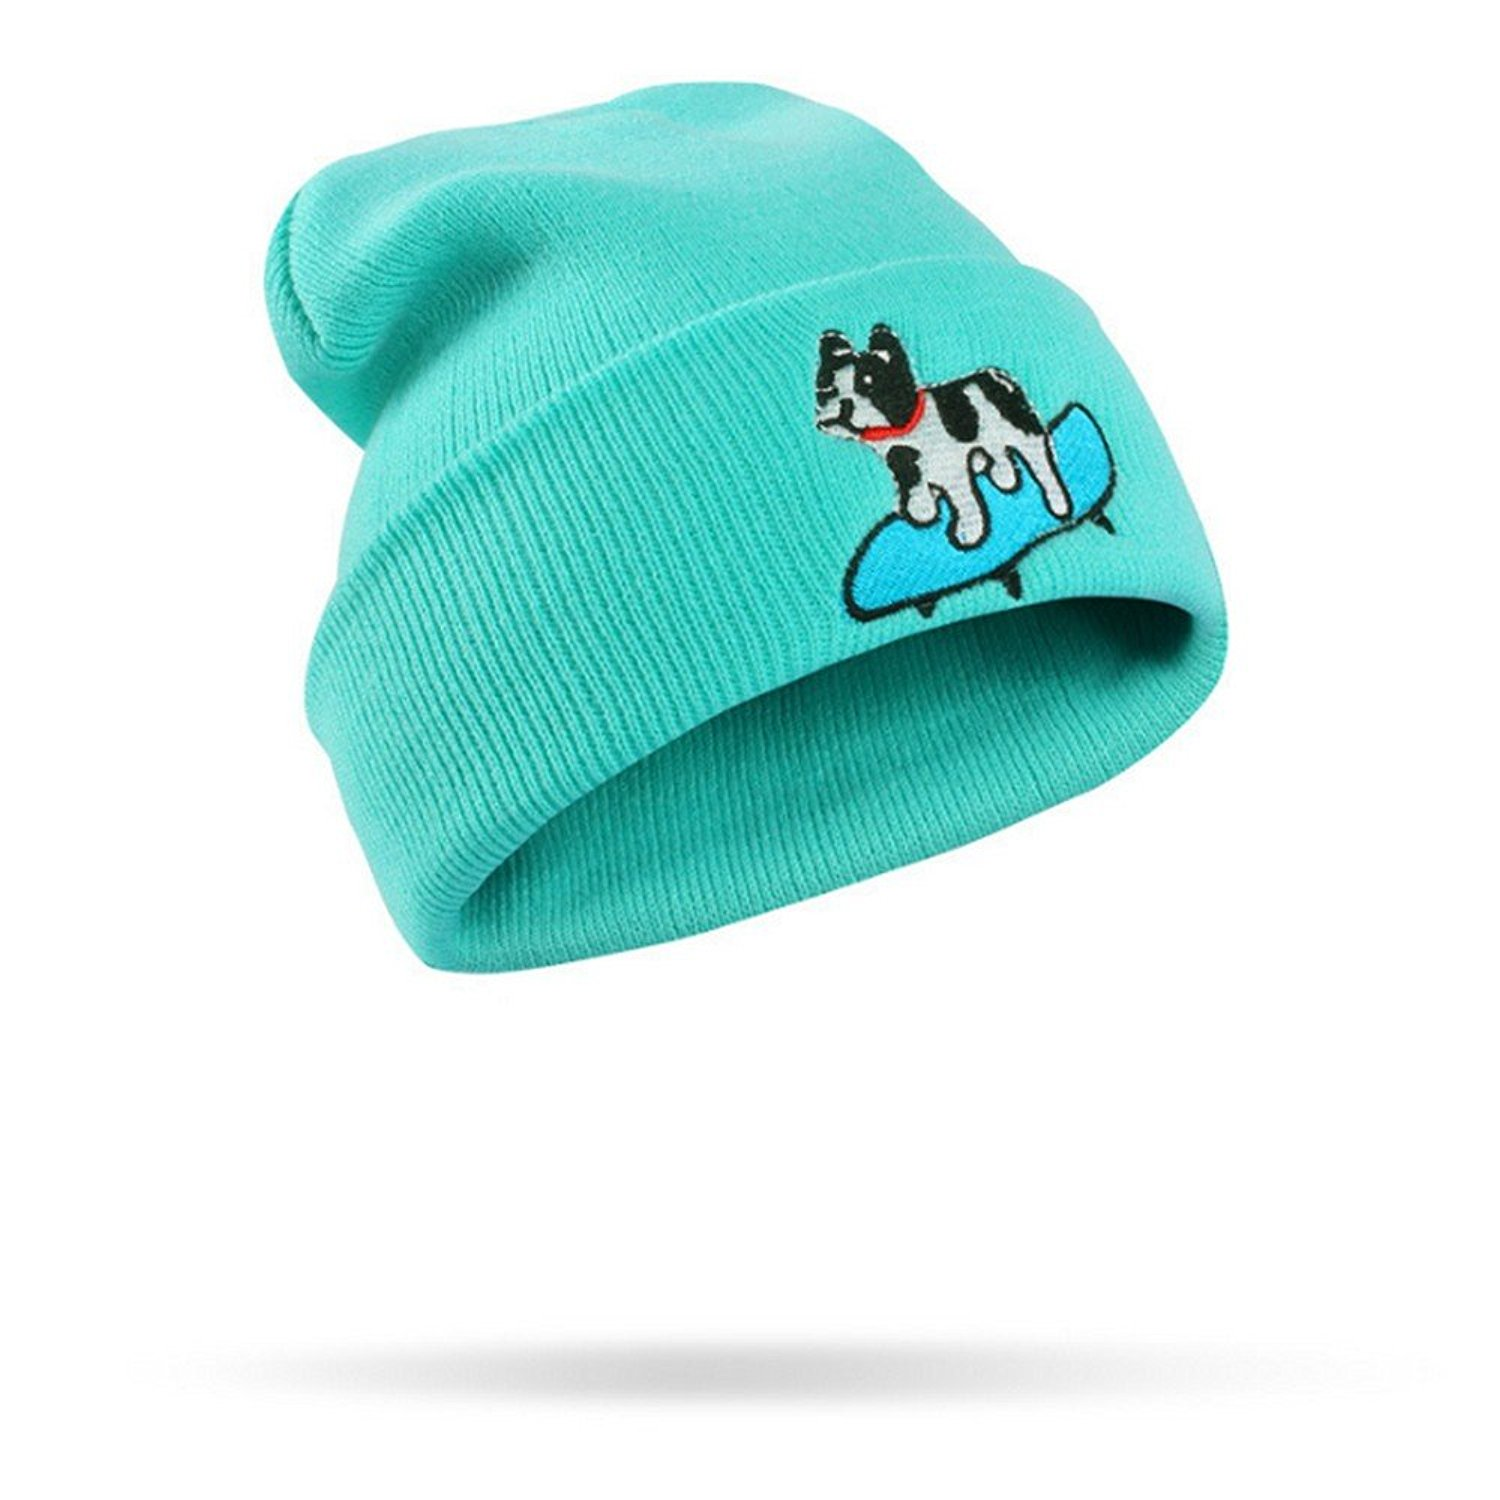 e1ef88c4c3b Get Quotations · CATOP Plain Knit Cap Cold Winter Cuff Beanie Cute Puppy  Dog Embroidery Skull Beanie Toboggan Knit